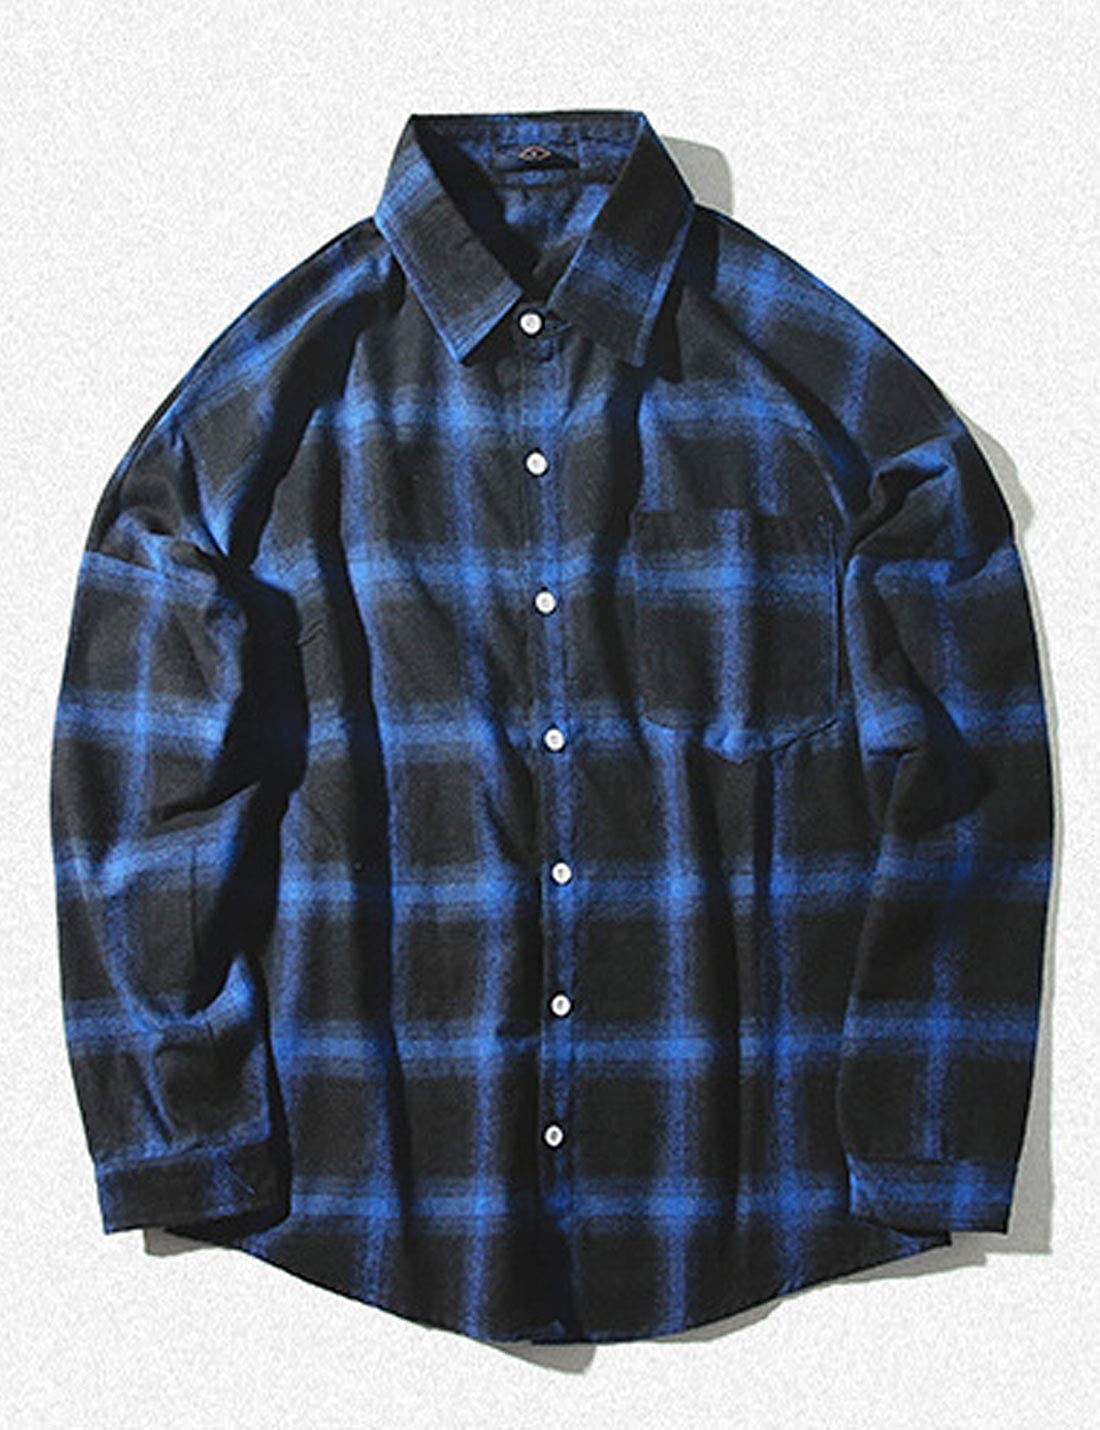 Omoone Mens Button Up Long Sleeve Fleece Lined Casual Loose Plaid Shirt Jacket